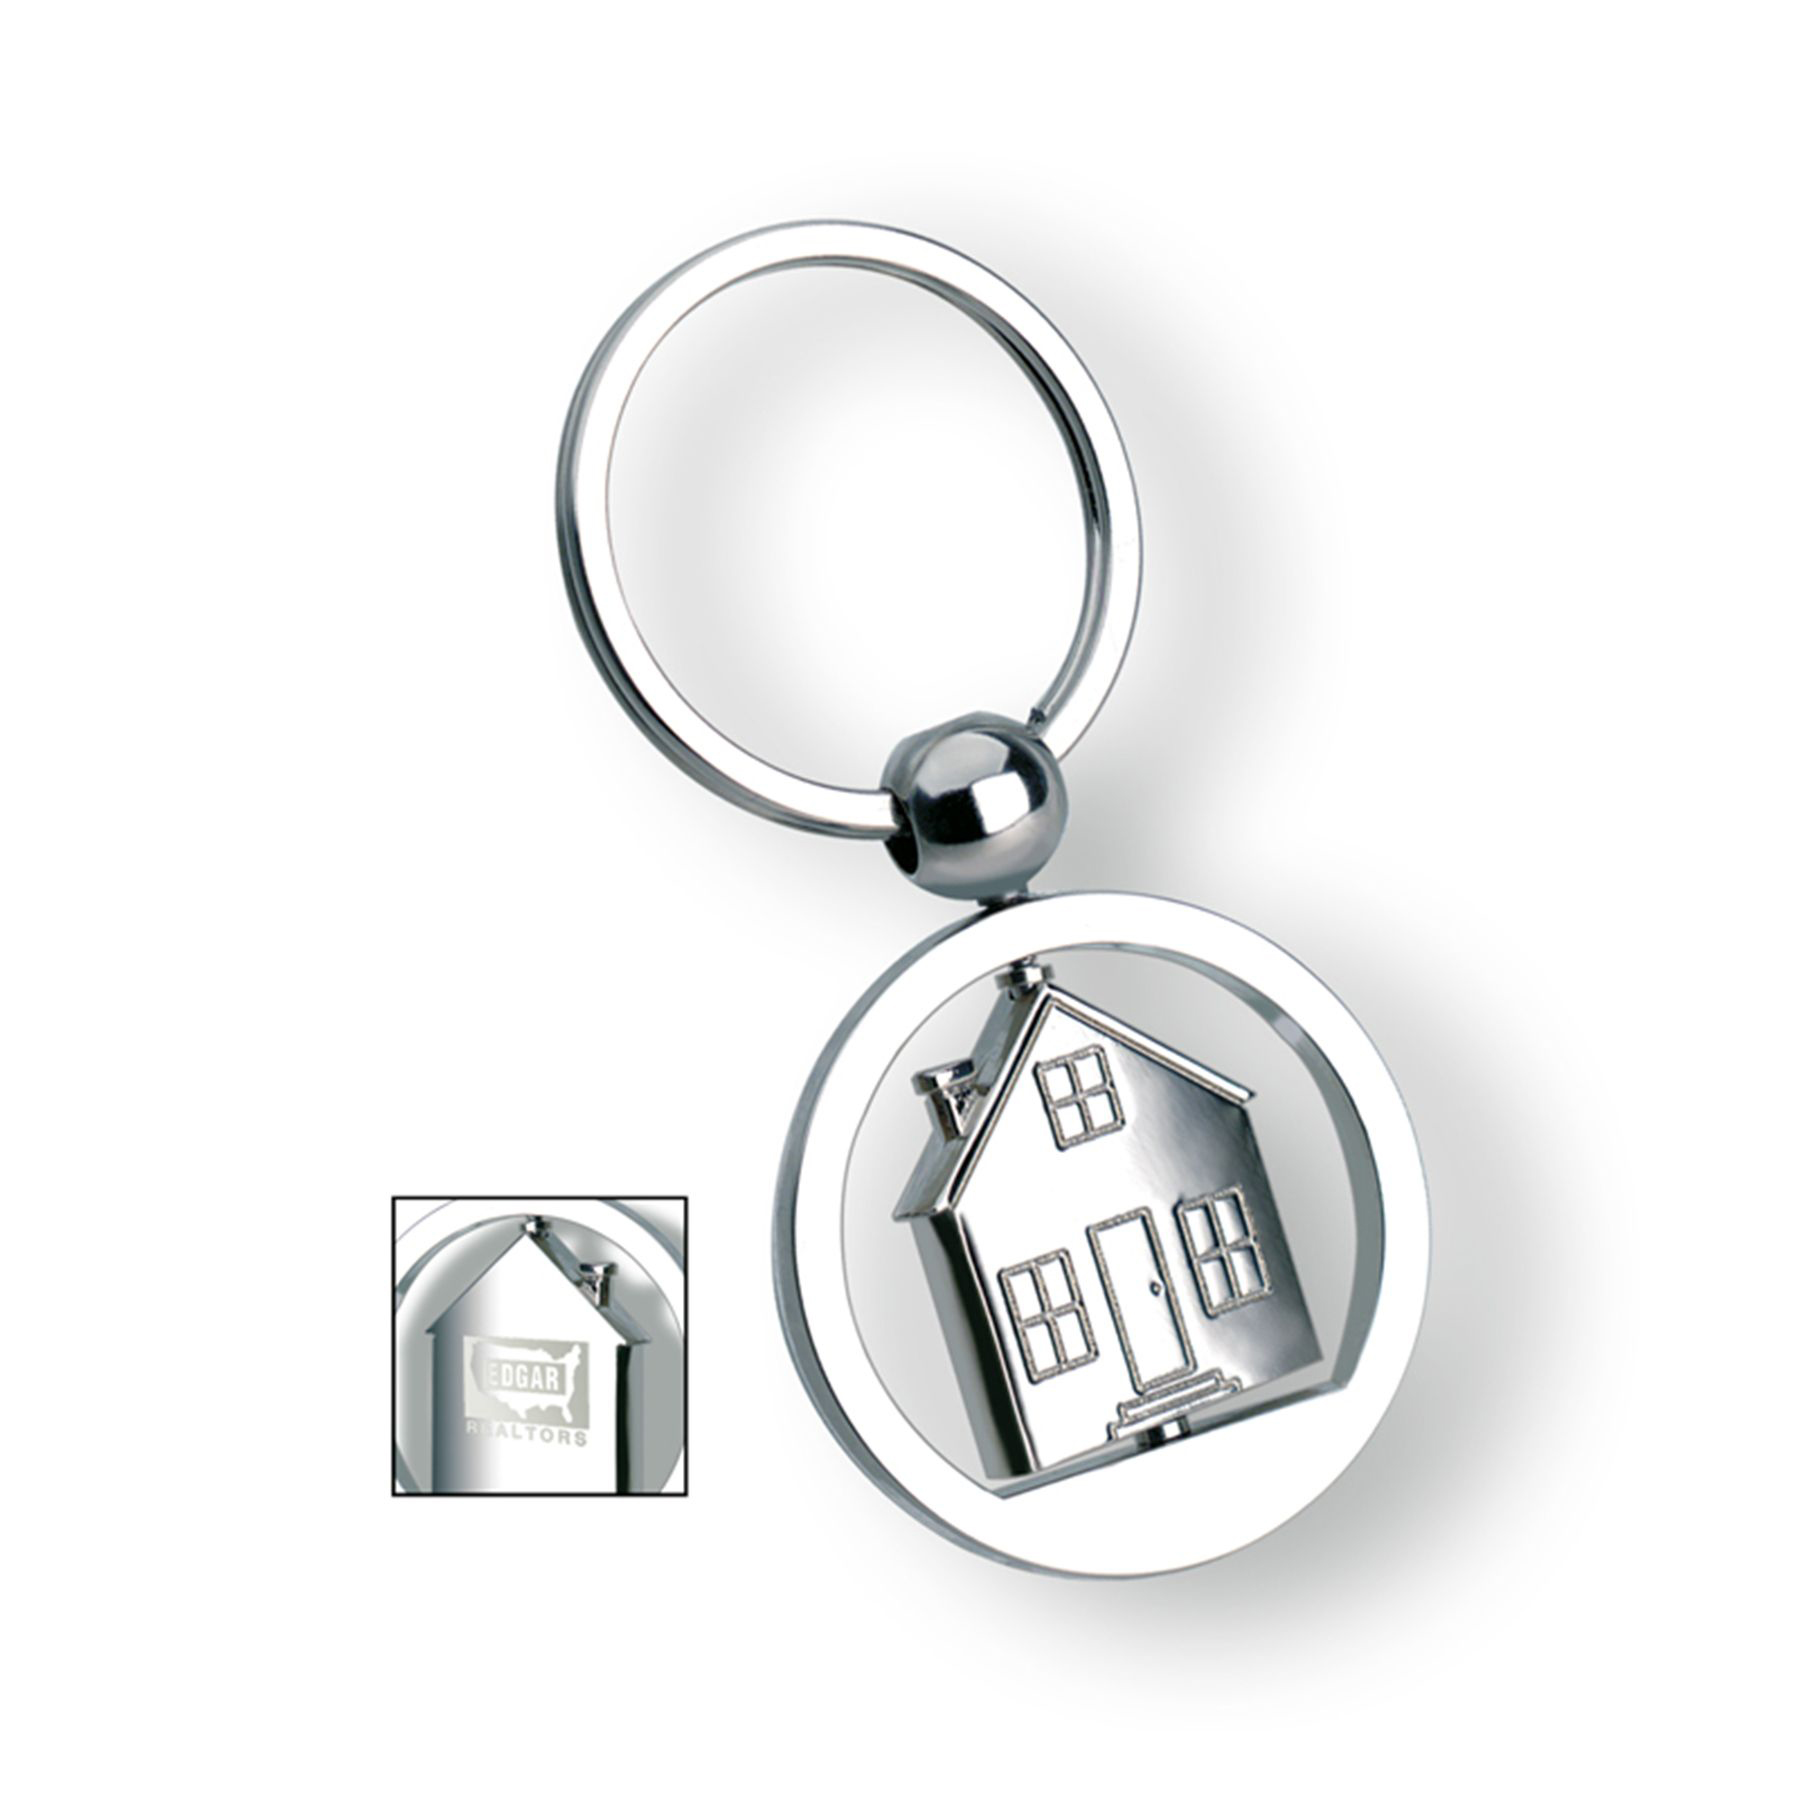 134693640-114 - Inner Spin House Key Holder - thumbnail